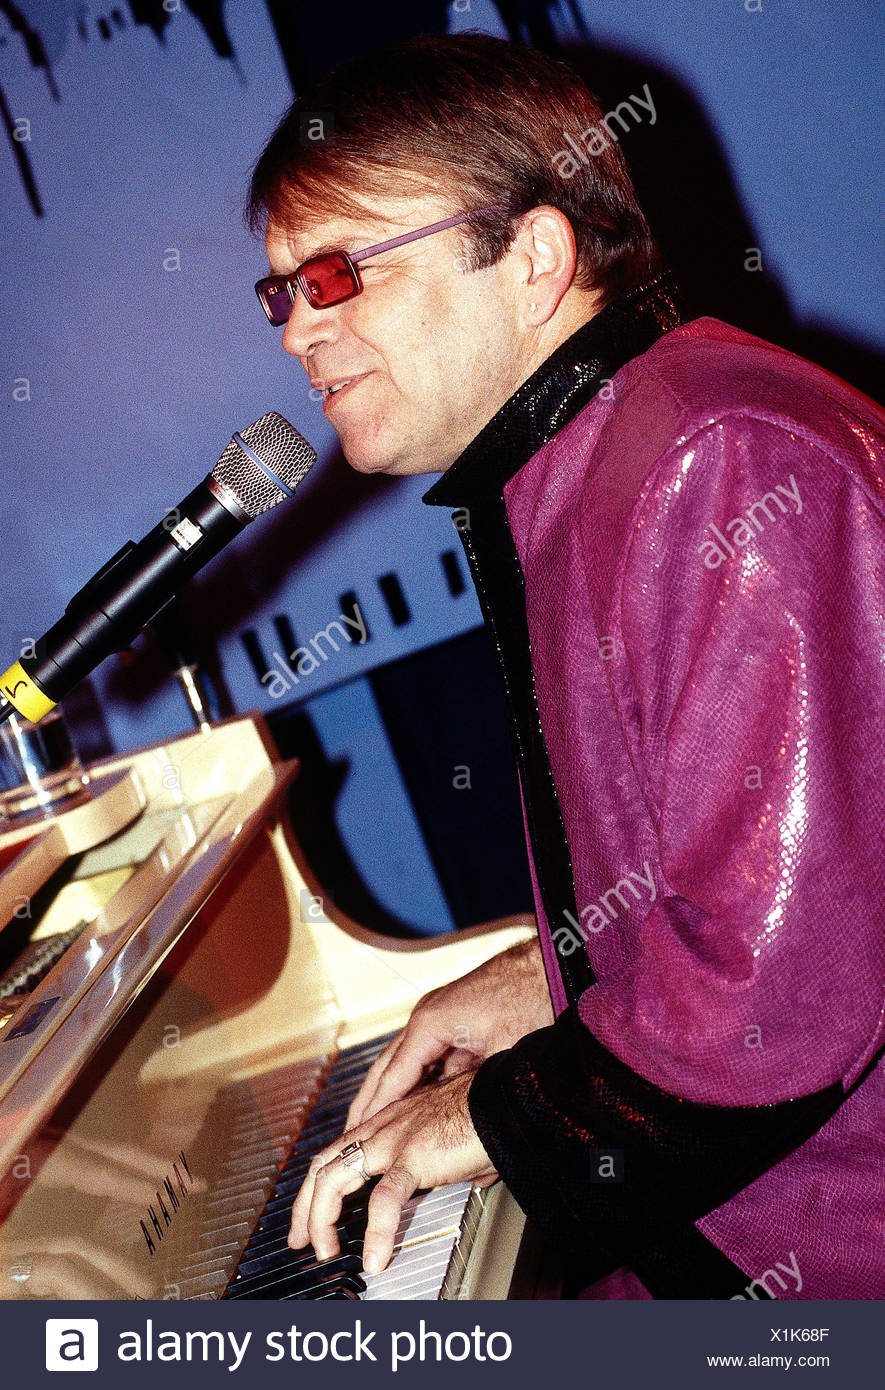 Adams, Mitch, singer, entertainer, look-alike, Elton John, half length, playing the piano, Munich, 13.11.2000, Additional-Rights-Clearances-NA - Stock Image